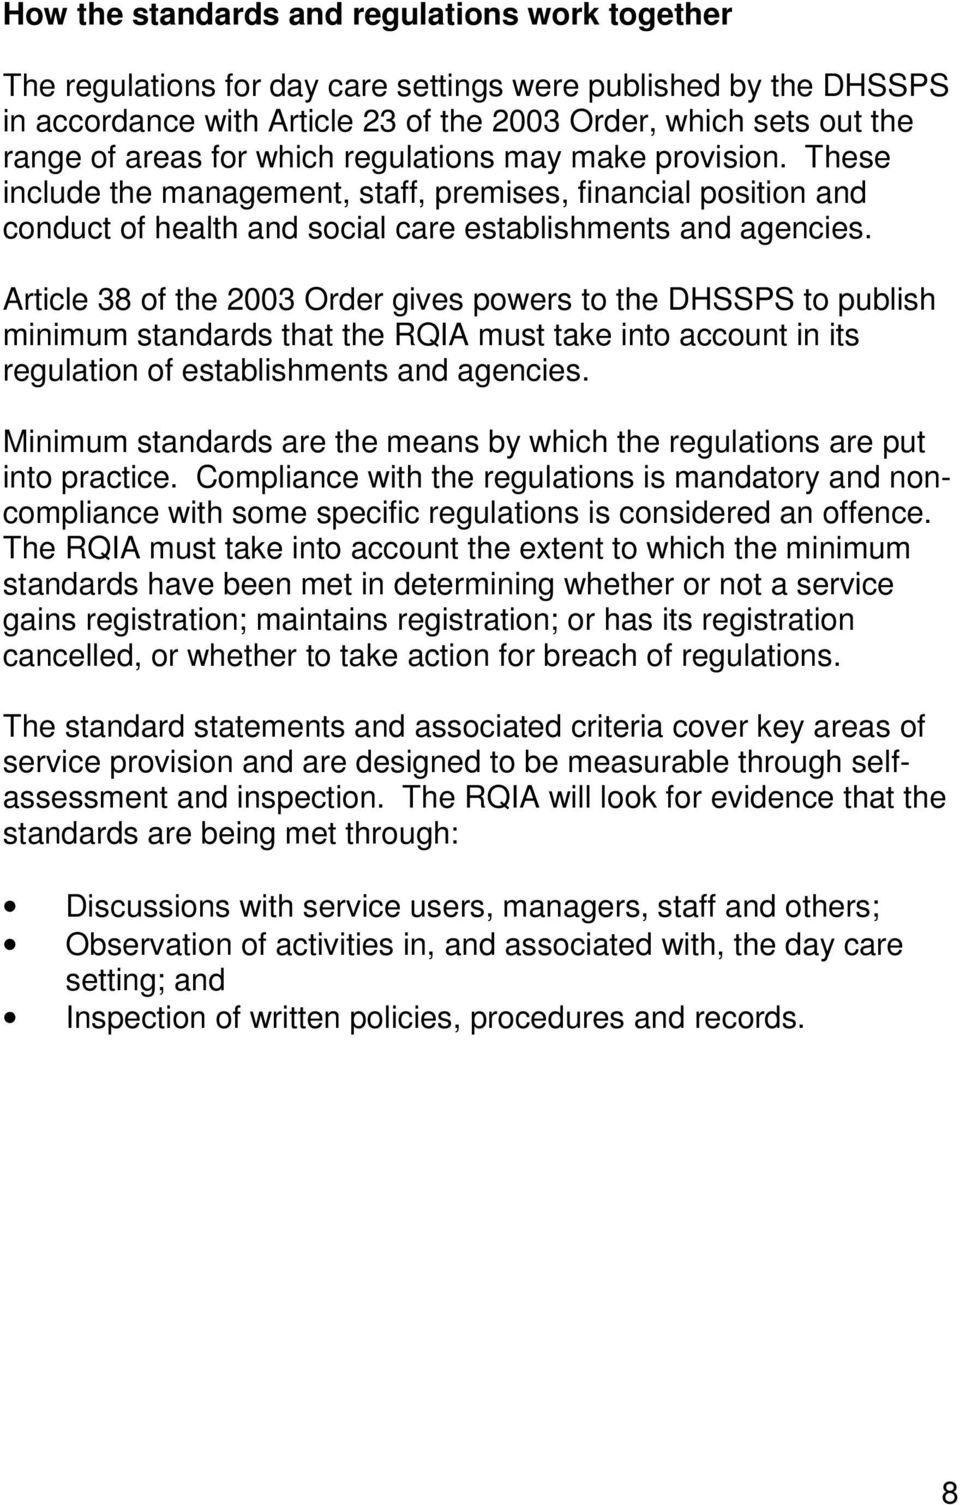 Article 38 of the 2003 Order gives powers to the DHSSPS to publish minimum standards that the RQIA must take into account in its regulation of establishments and agencies.